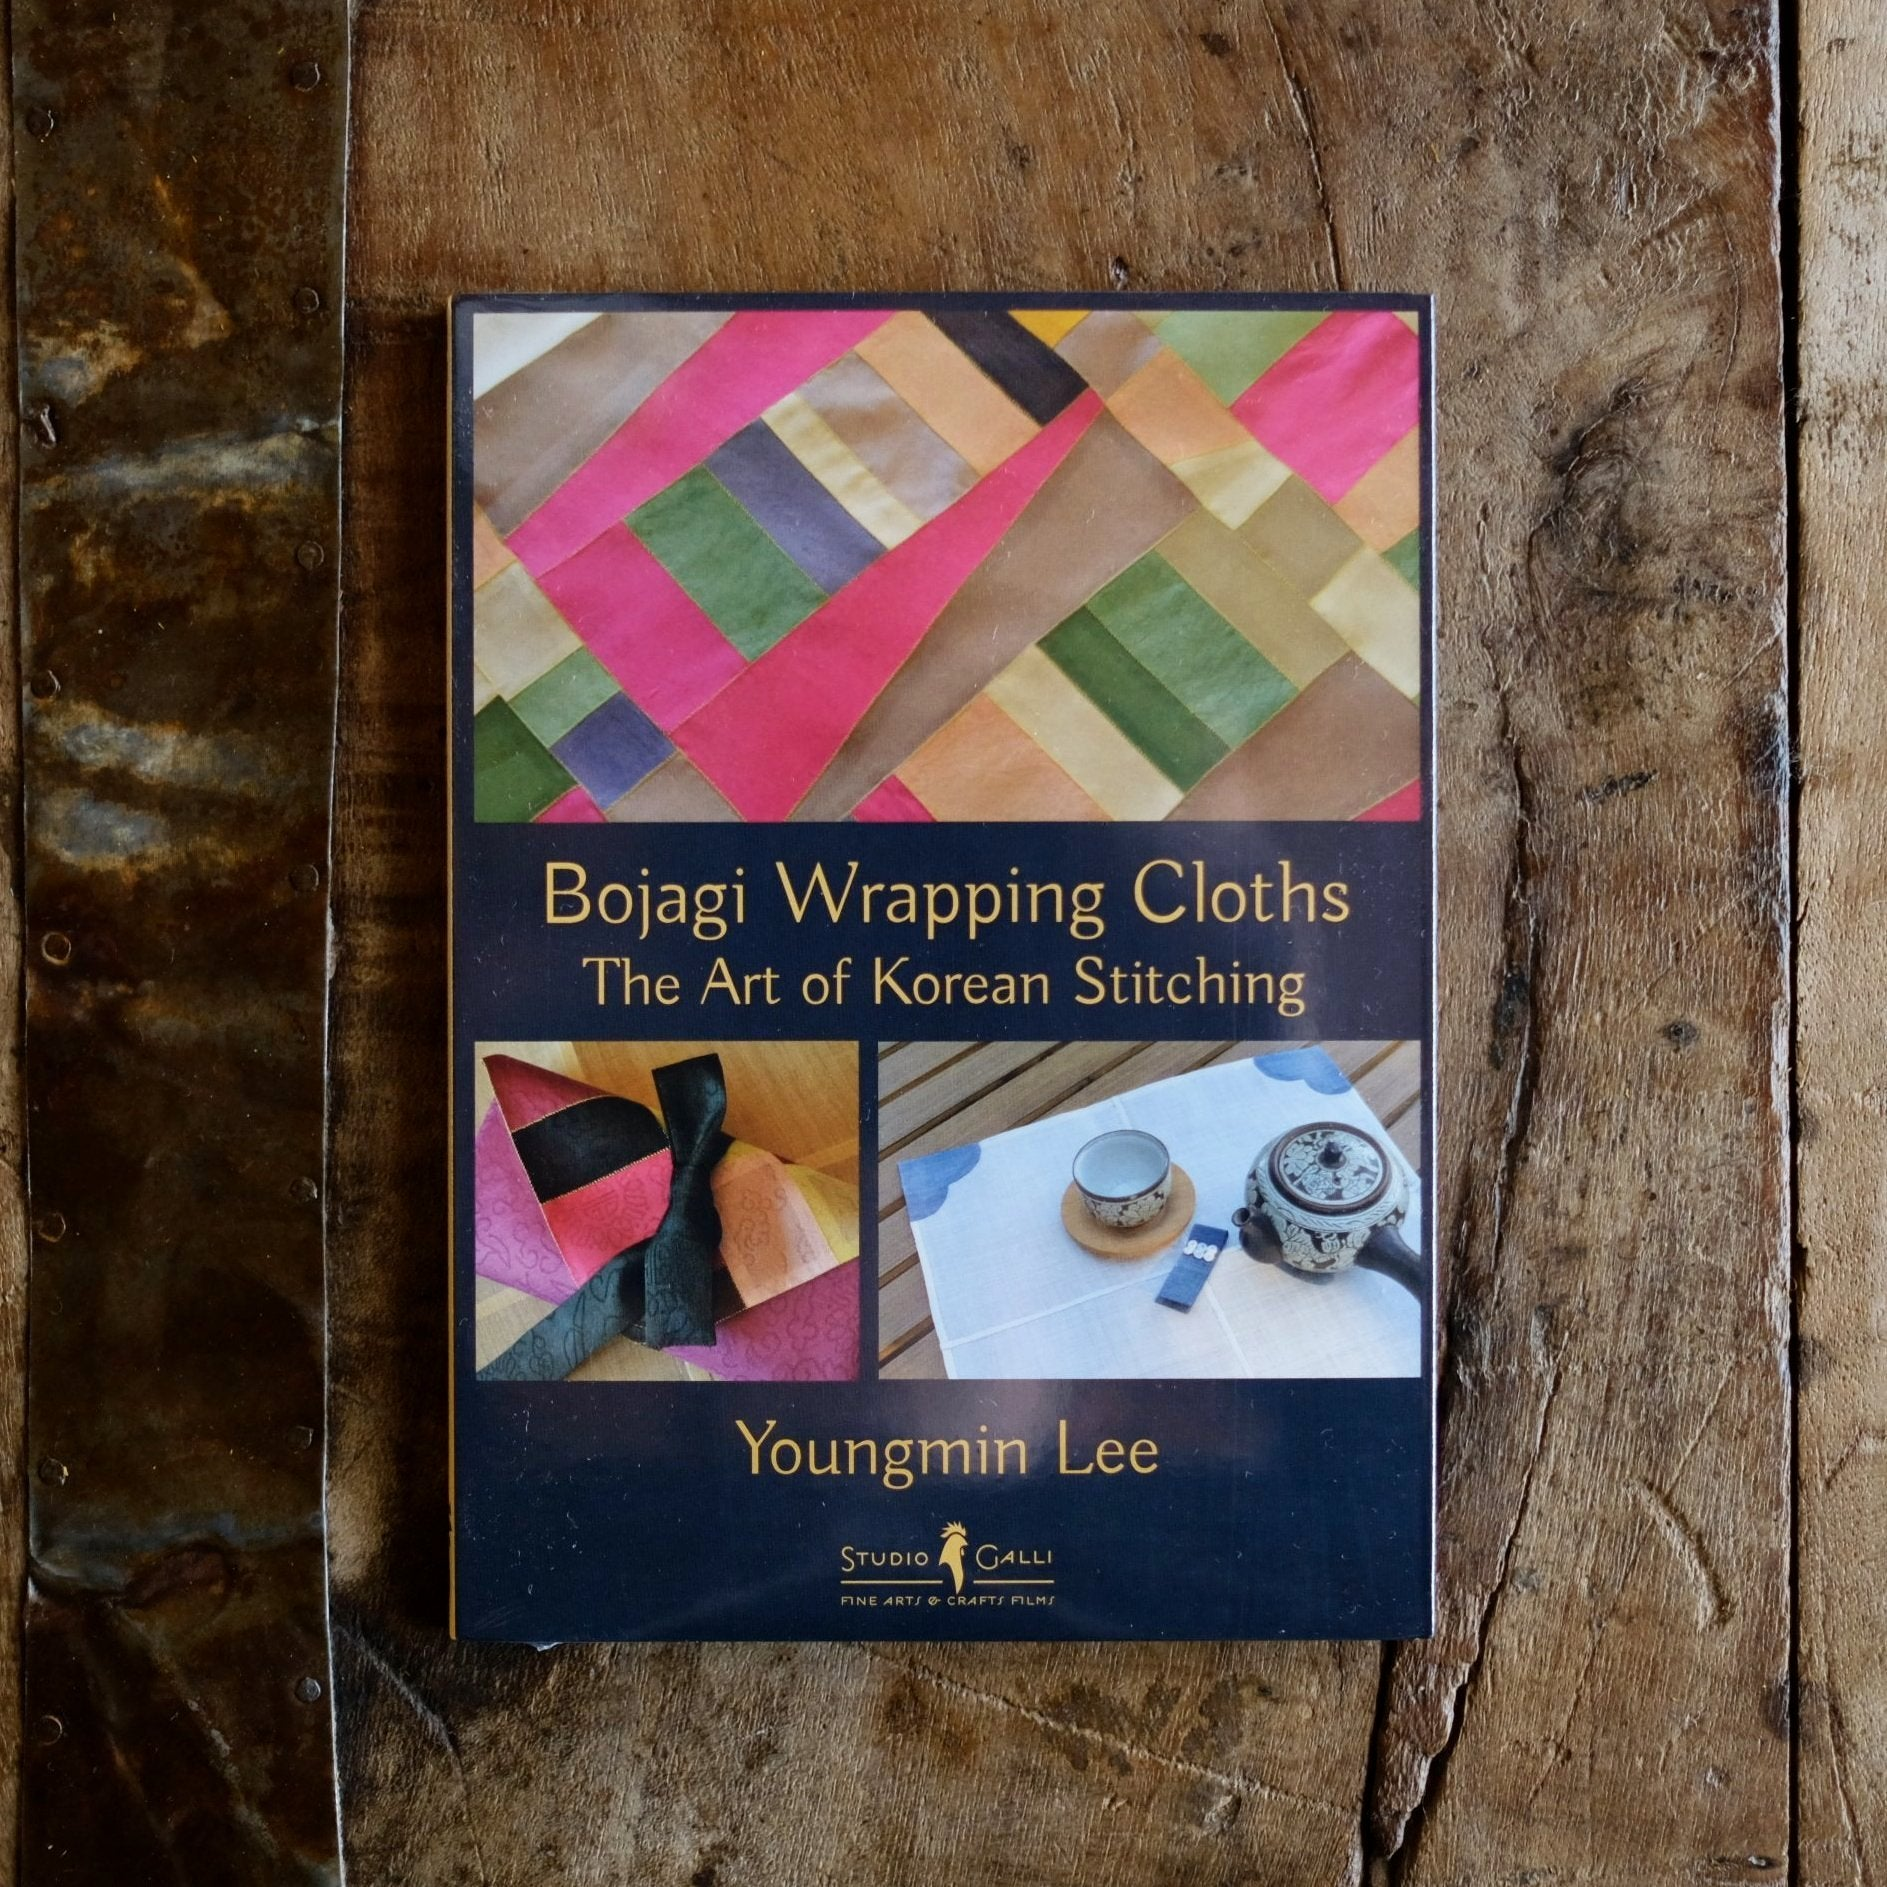 Bojagi Wrapping Cloths: The Art of Korean Stitching by Youngmin Lee - SOLD OUT